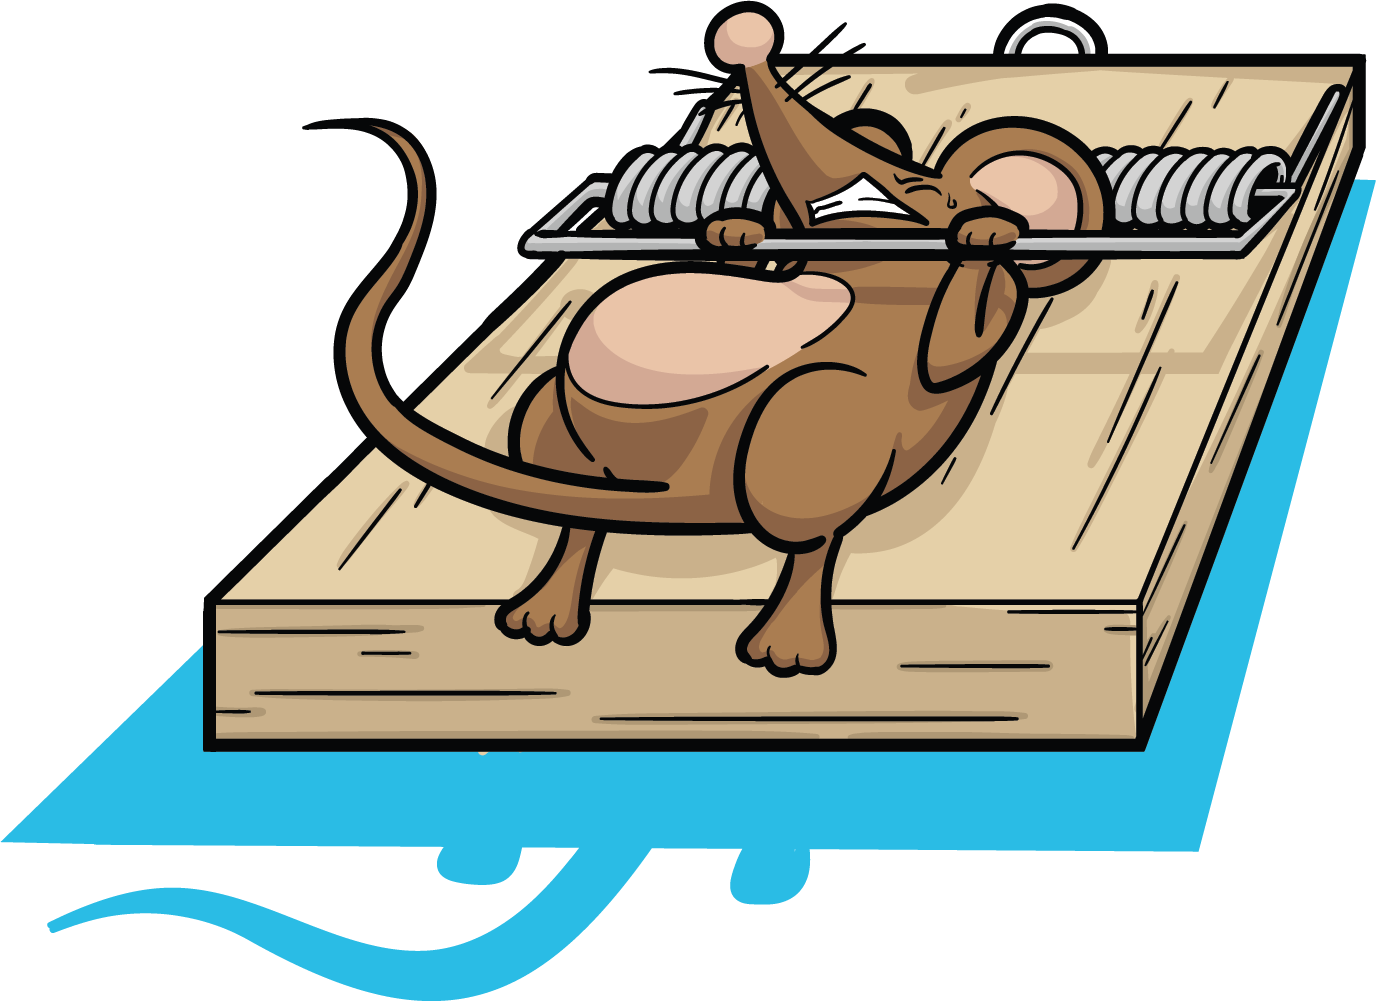 Mousetrap drawing rat trap. Mouse clipart black